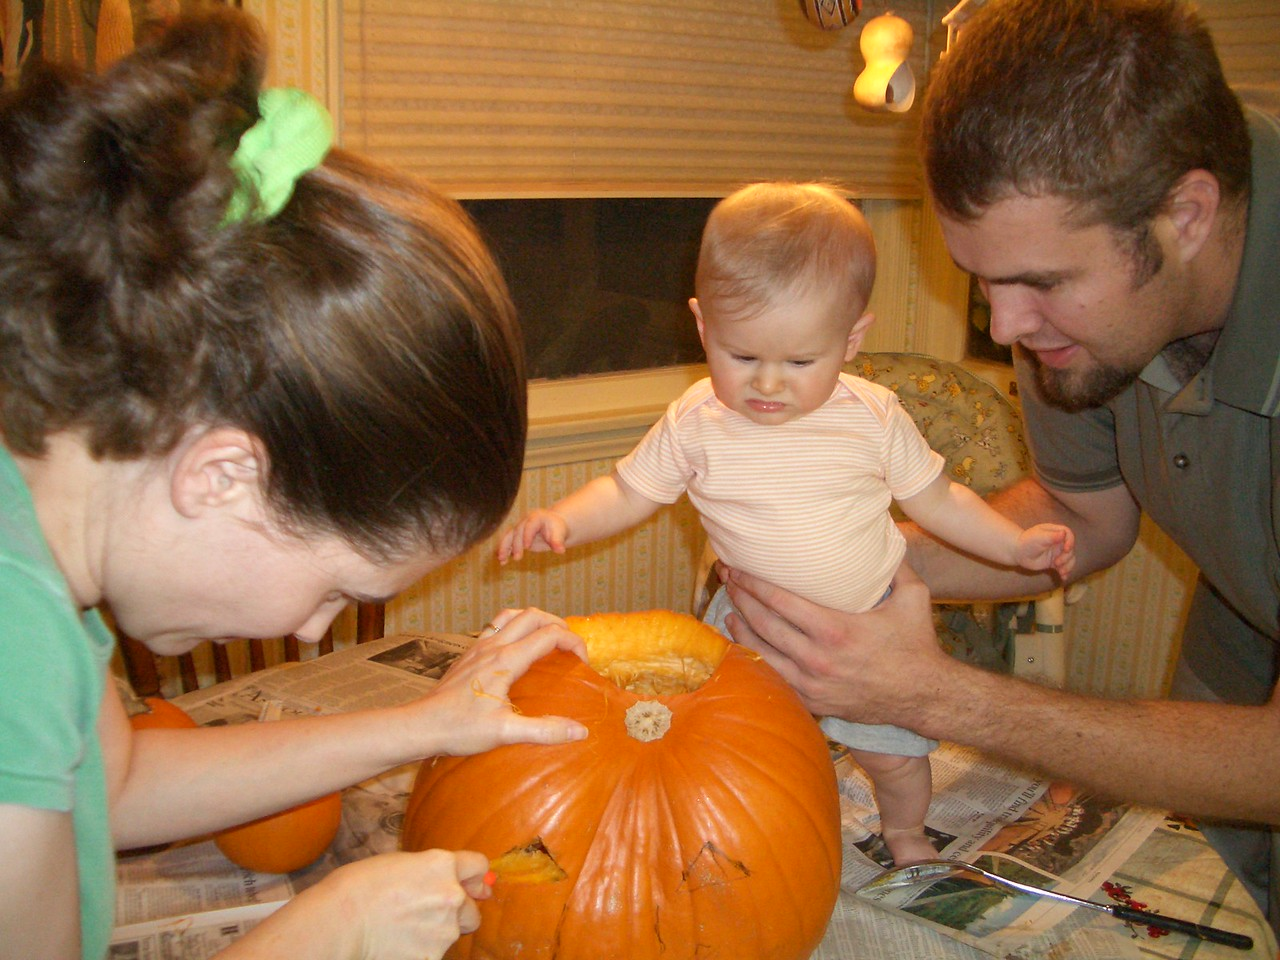 Cody is not too sure what to think about this pumpkin carving stuff.